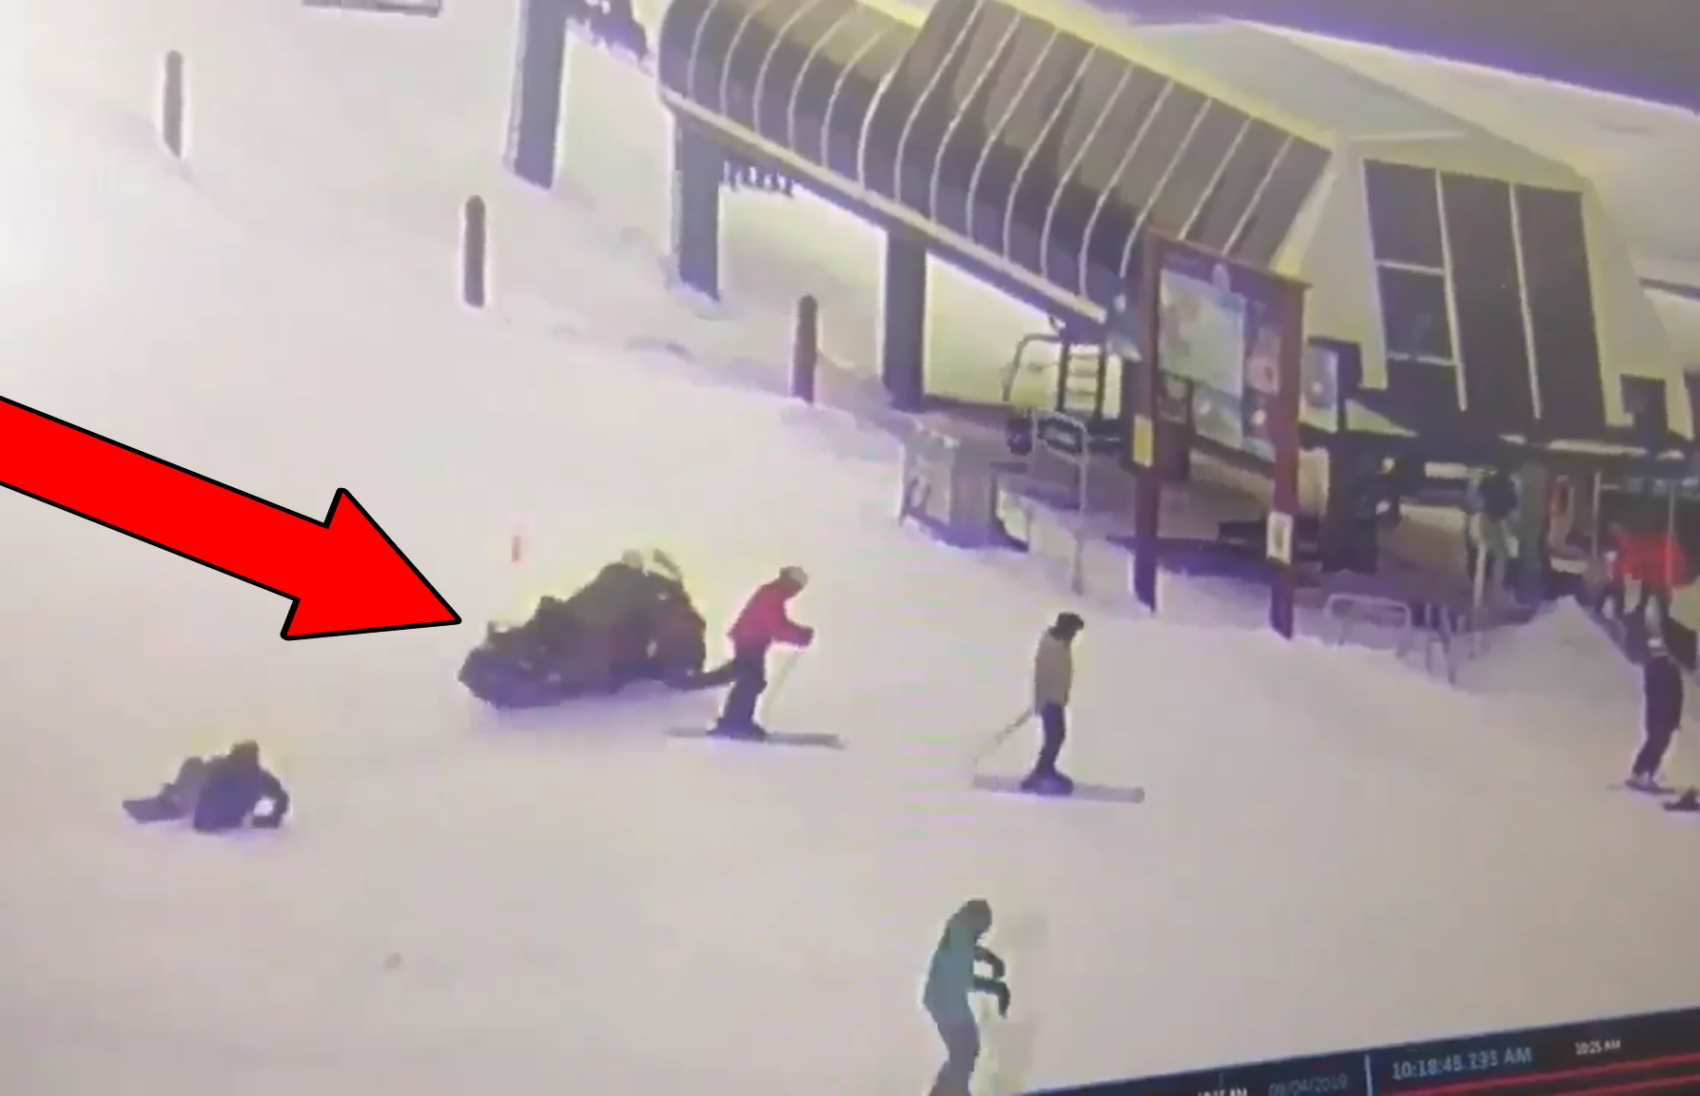 Video Out Of Control Snowmobile Smashes Into Lift Station